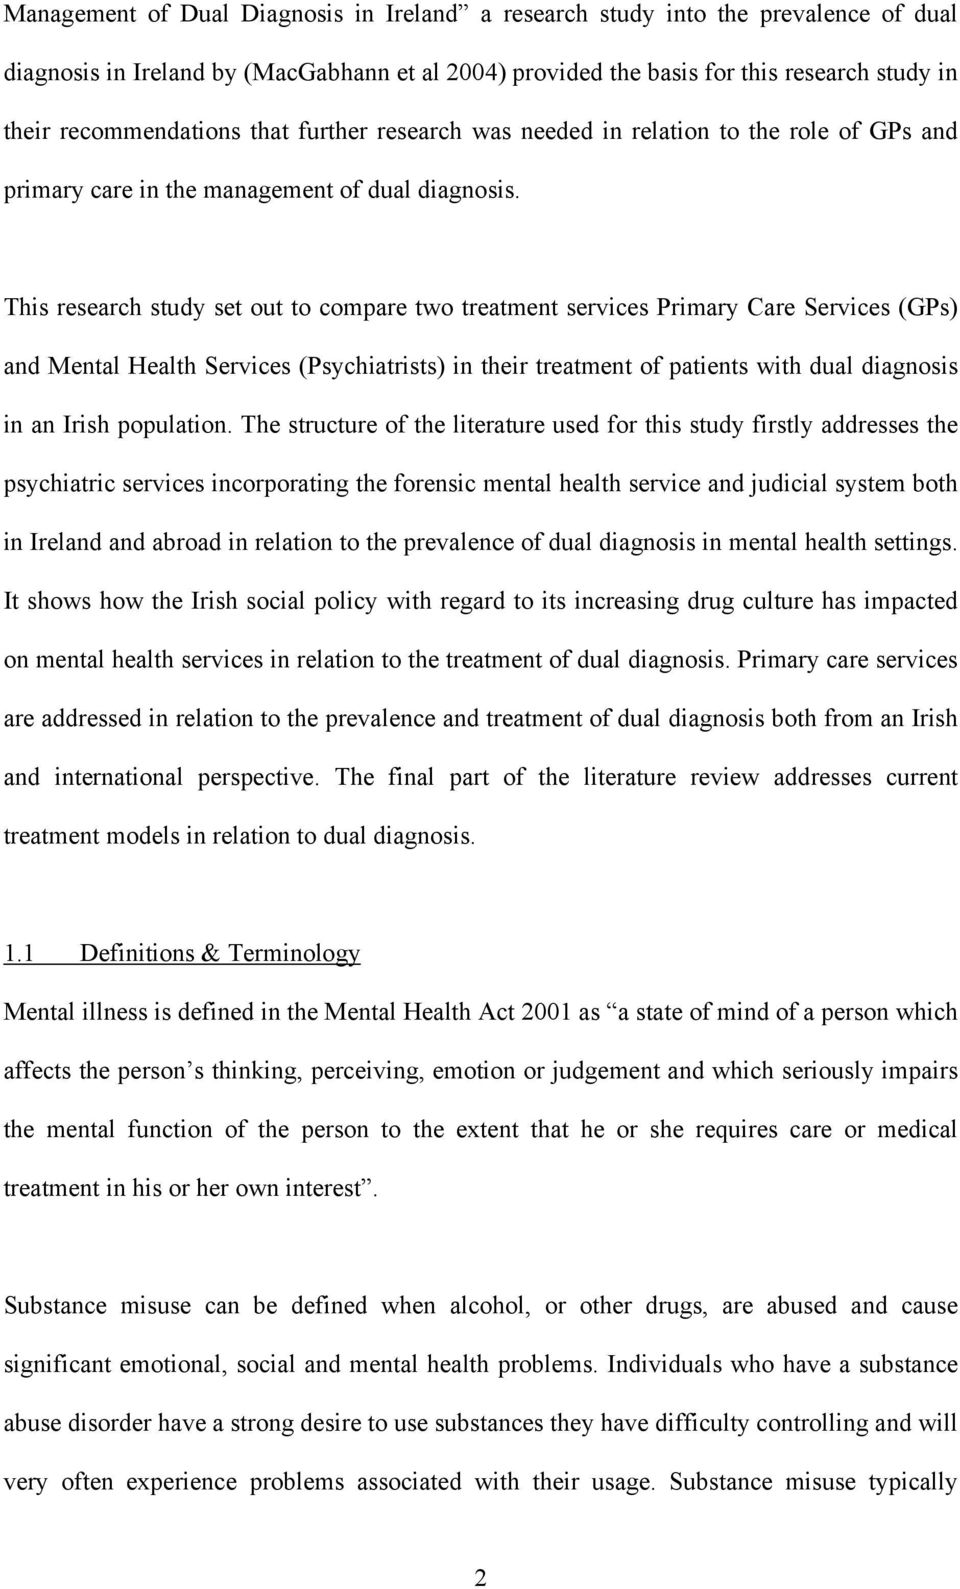 This research study set out to compare two treatment services Primary Care Services (GPs) and Mental Health Services (Psychiatrists) in their treatment of patients with dual diagnosis in an Irish